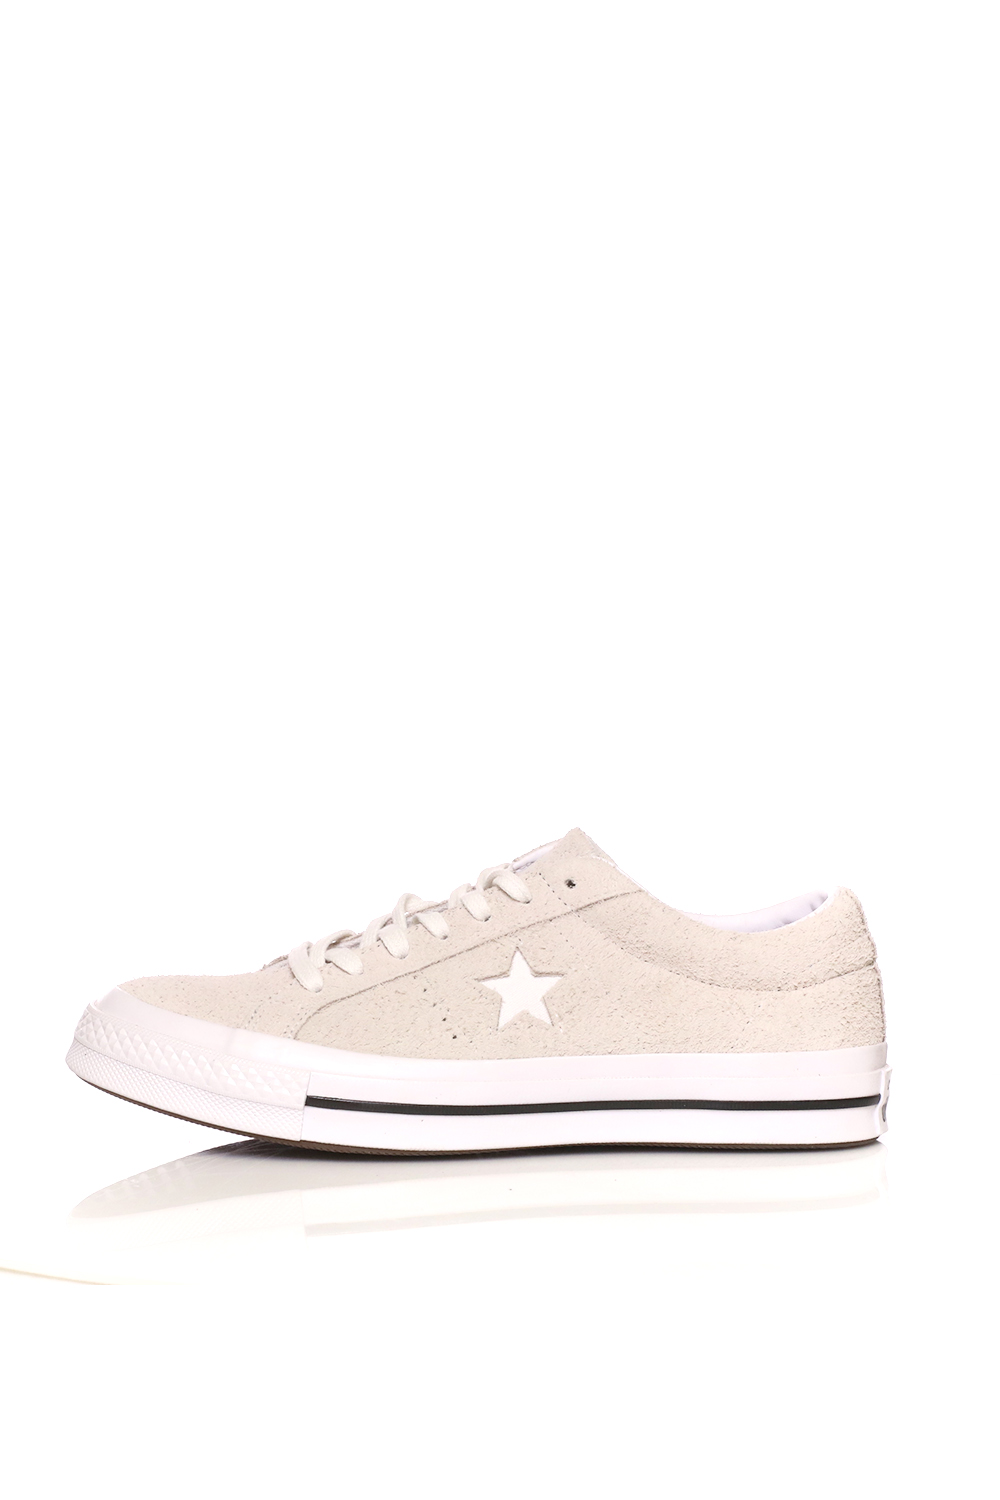 CONVERSE - Unisex Sneakers CONVERSE One Star Λευκά